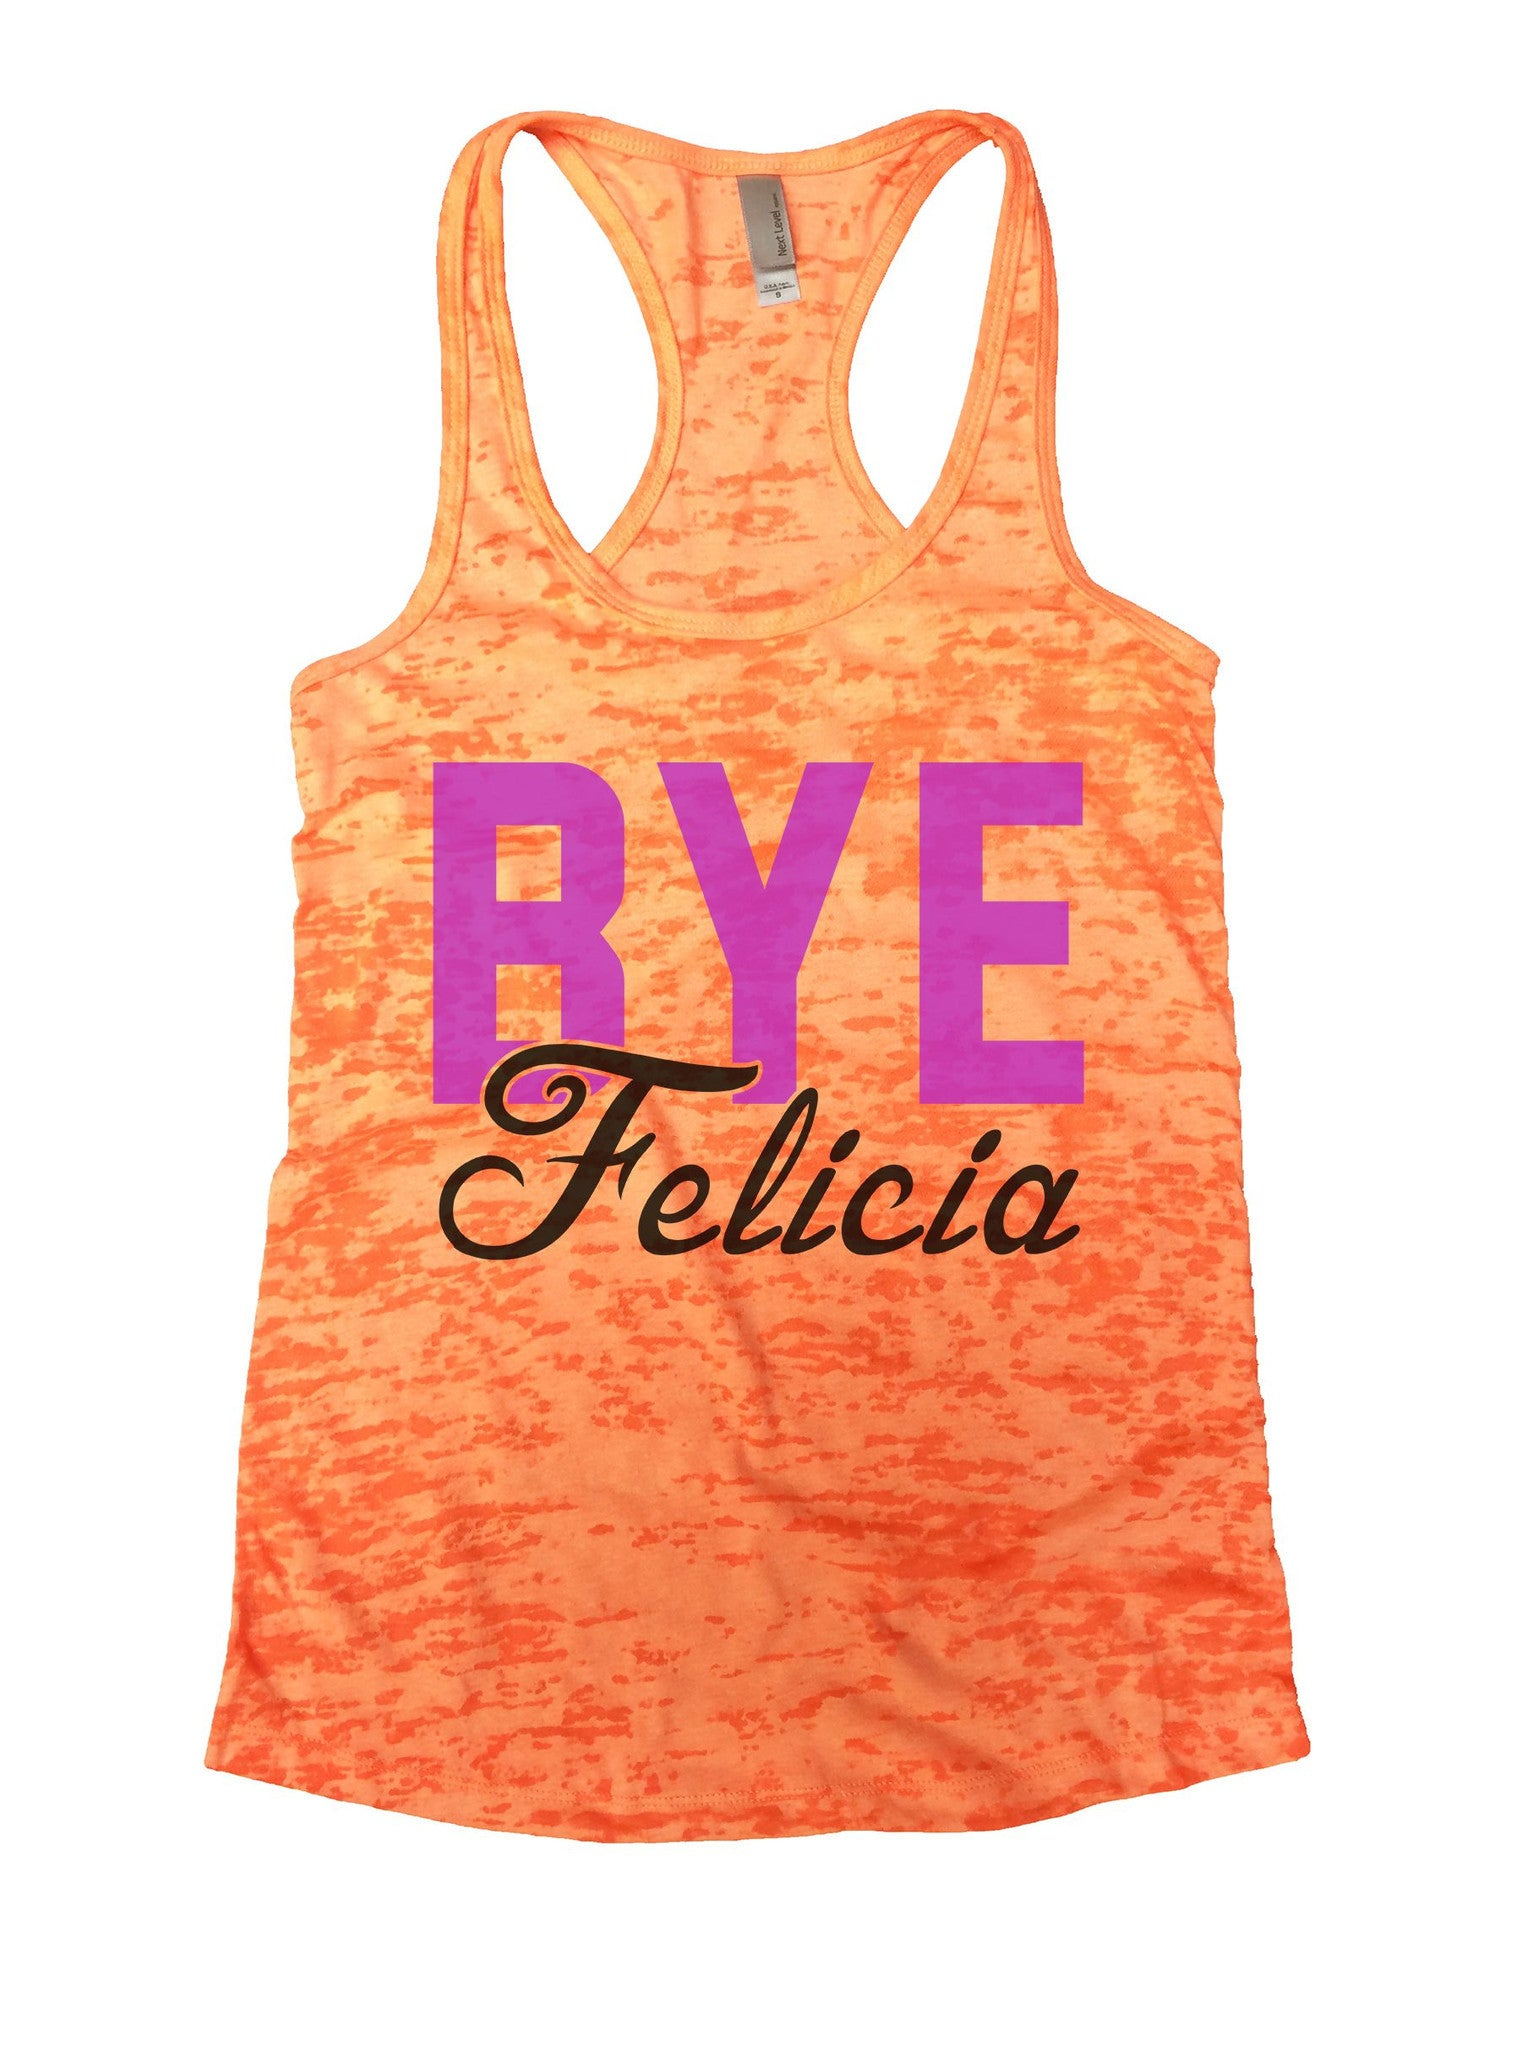 Bye Felicia Burnout Tank Top By BurnoutTankTops.com - 1092 - Funny Shirts Tank Tops Burnouts and Triblends  - 3